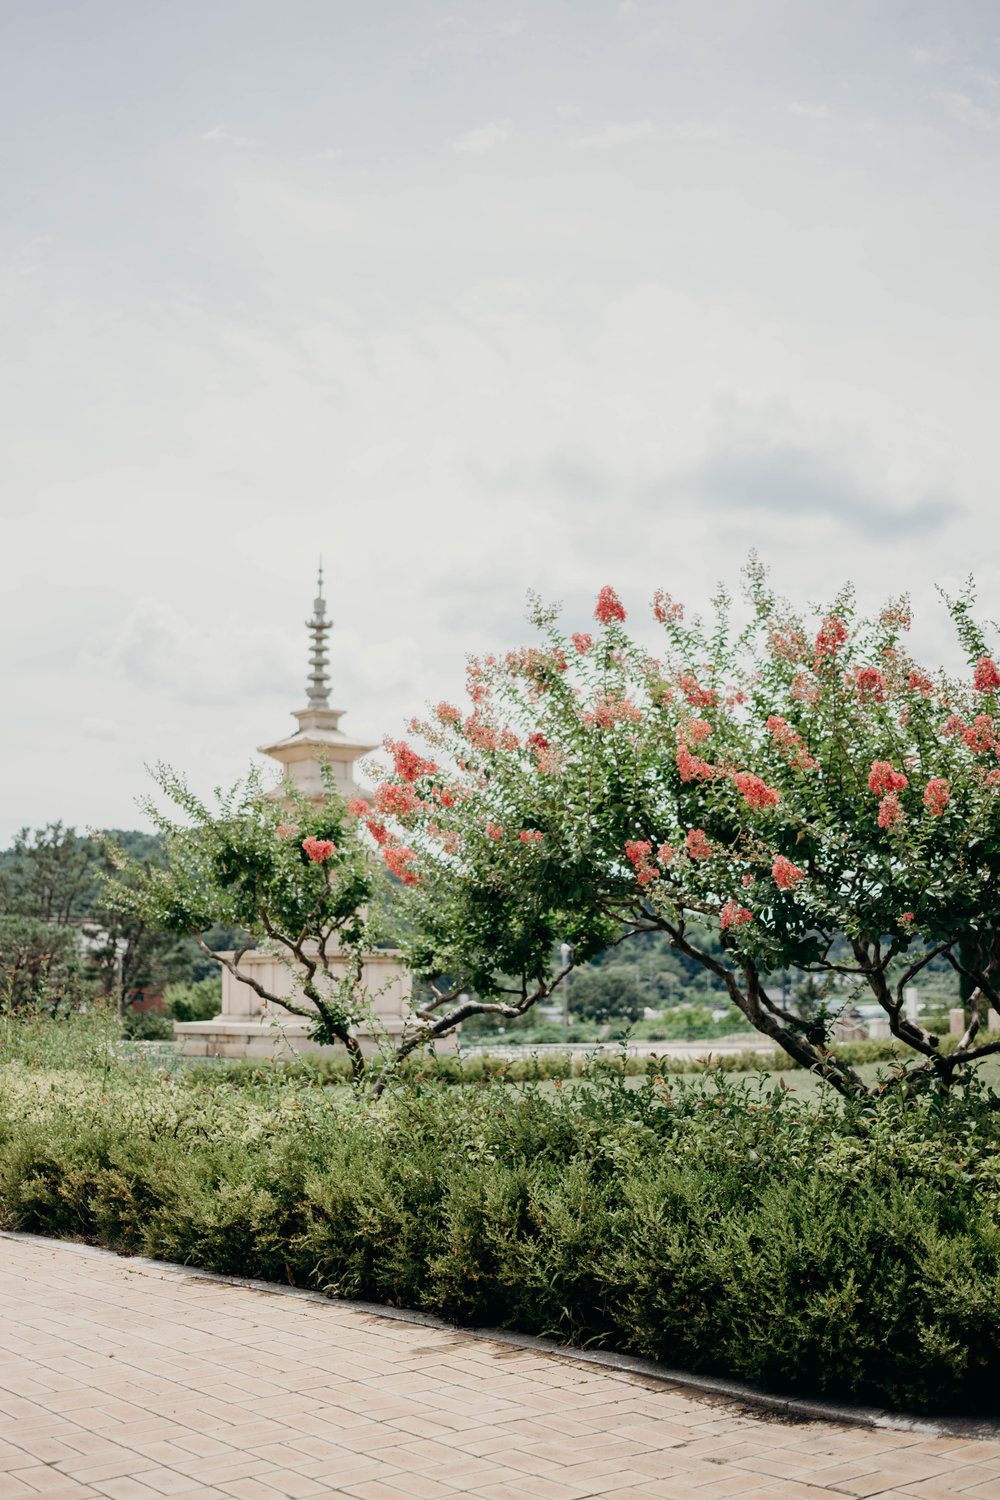 Gyeongju, South Korea: The City That Stole My Heart | On the Street Where We Live (aretherelilactrees.com)  Gyeongju National Museum